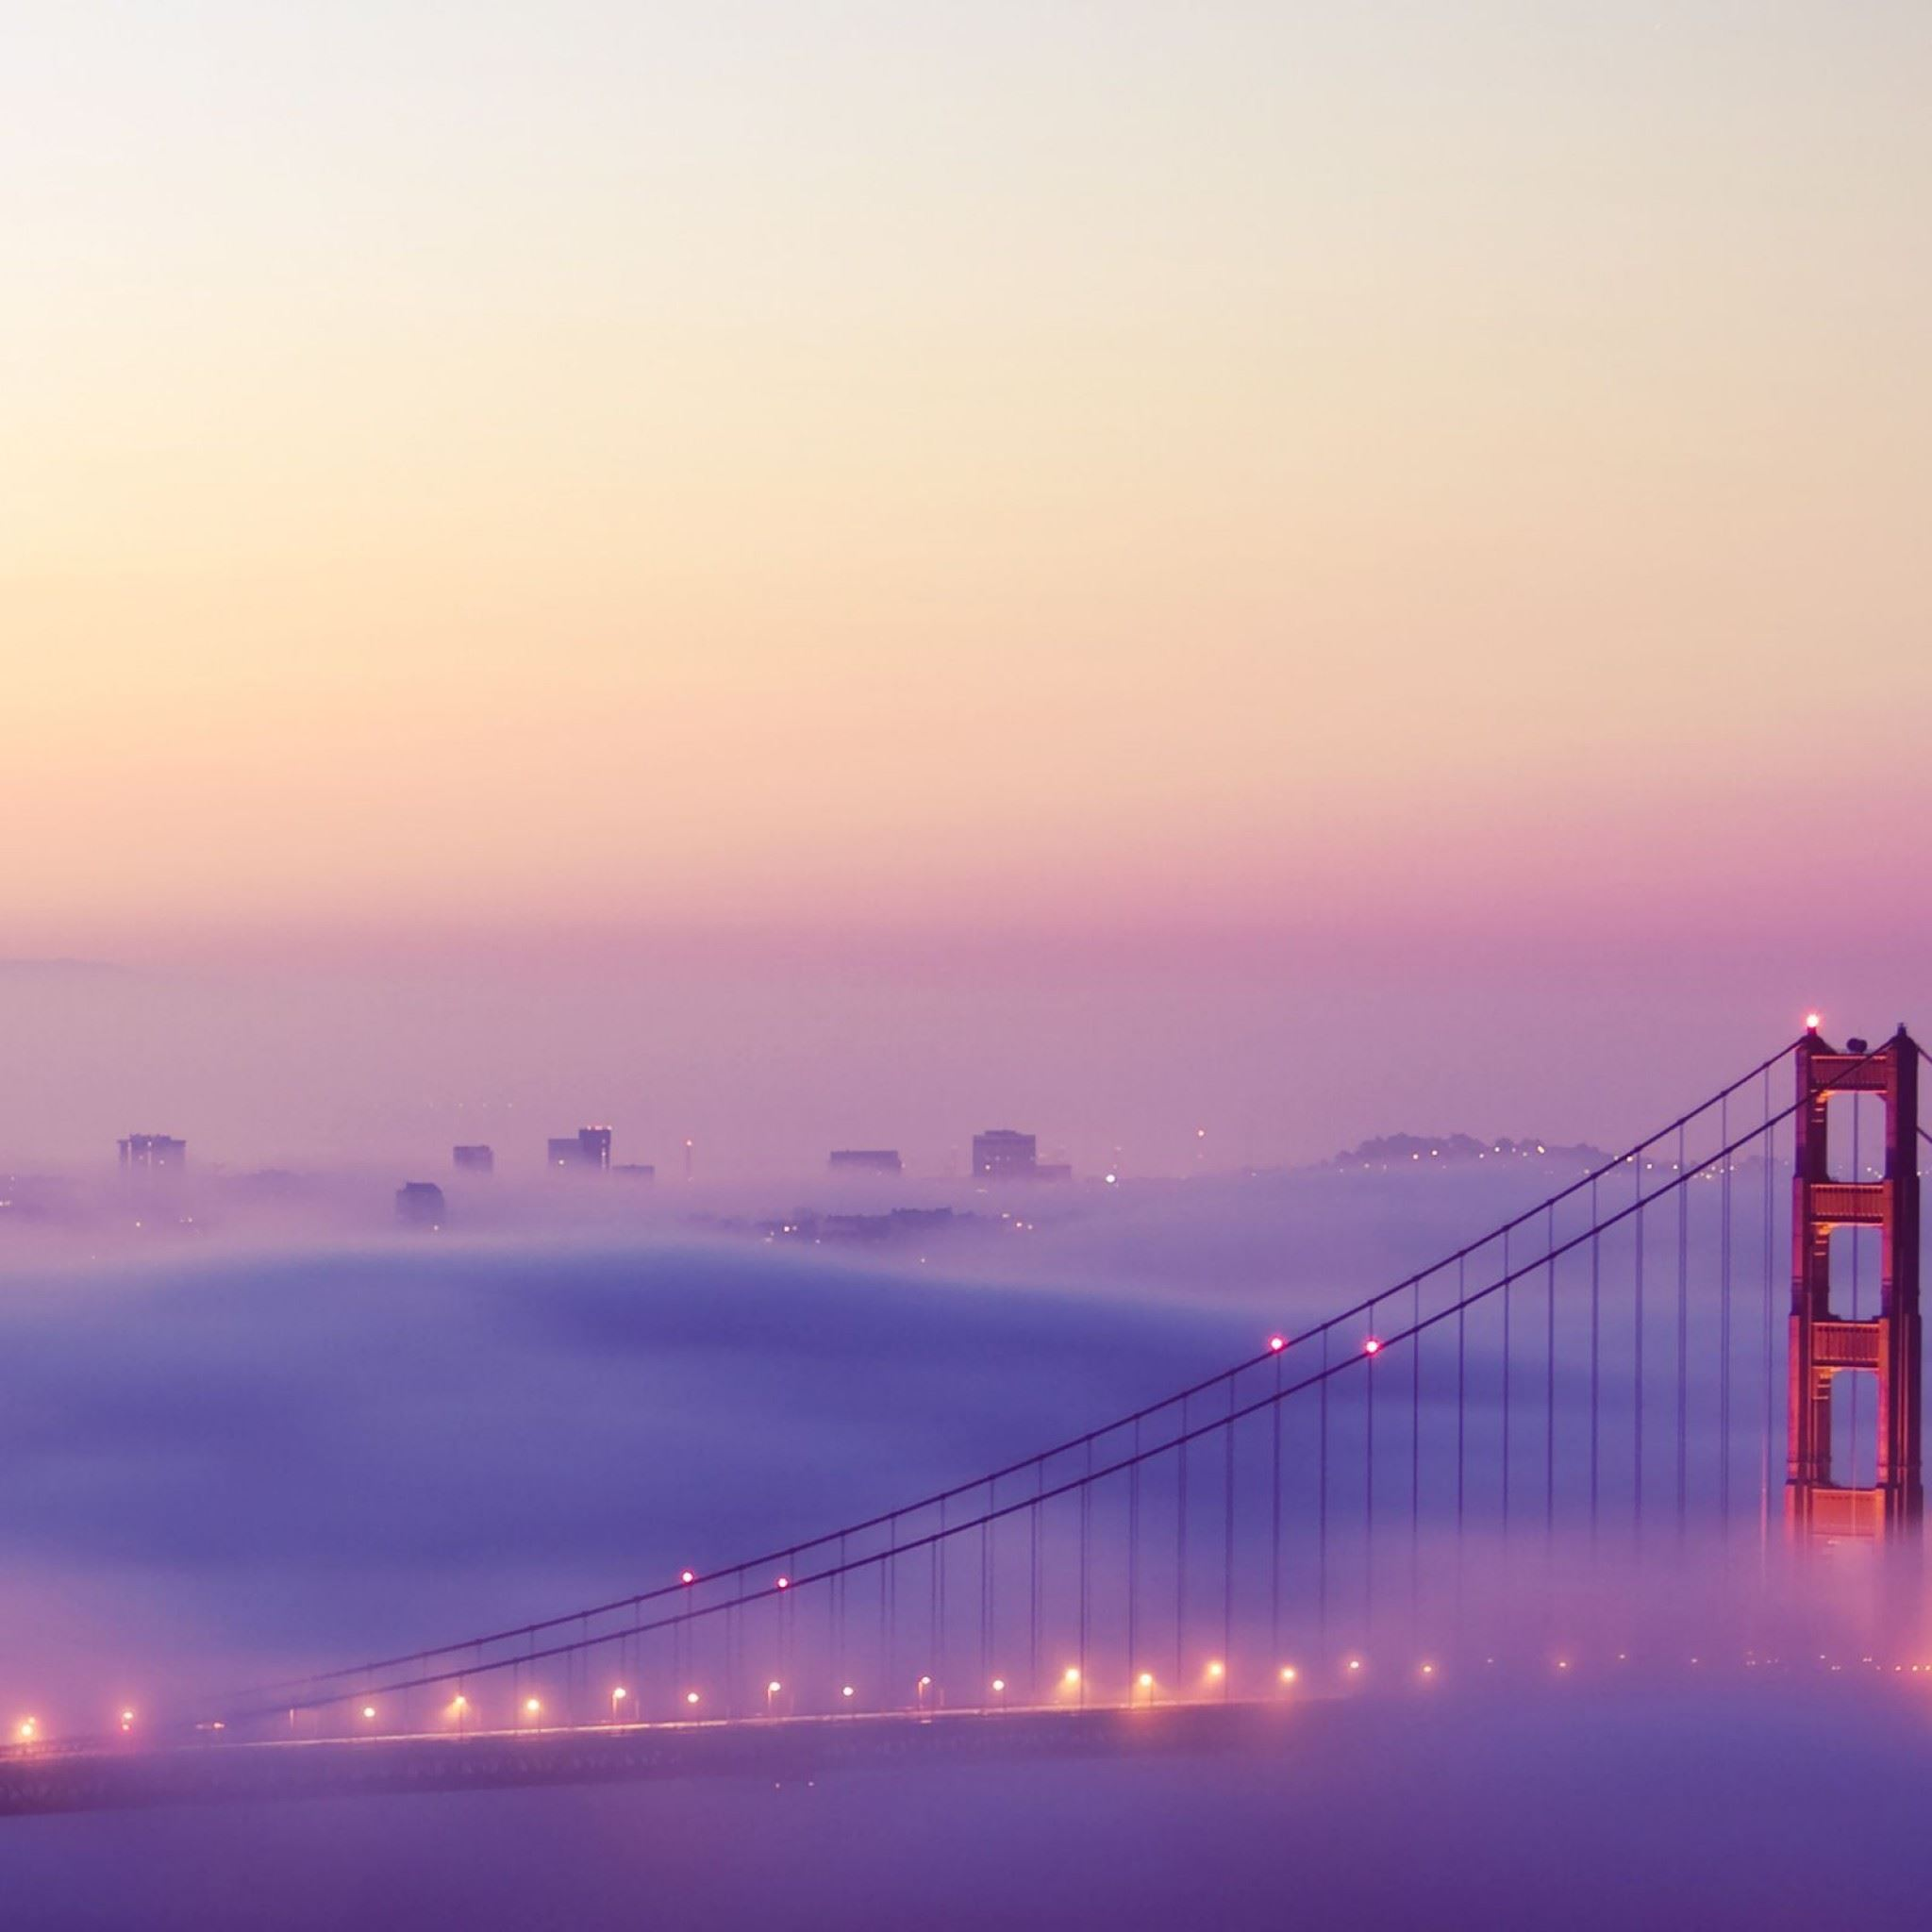 San Francisco Bridge Fog iPad Air wallpaper